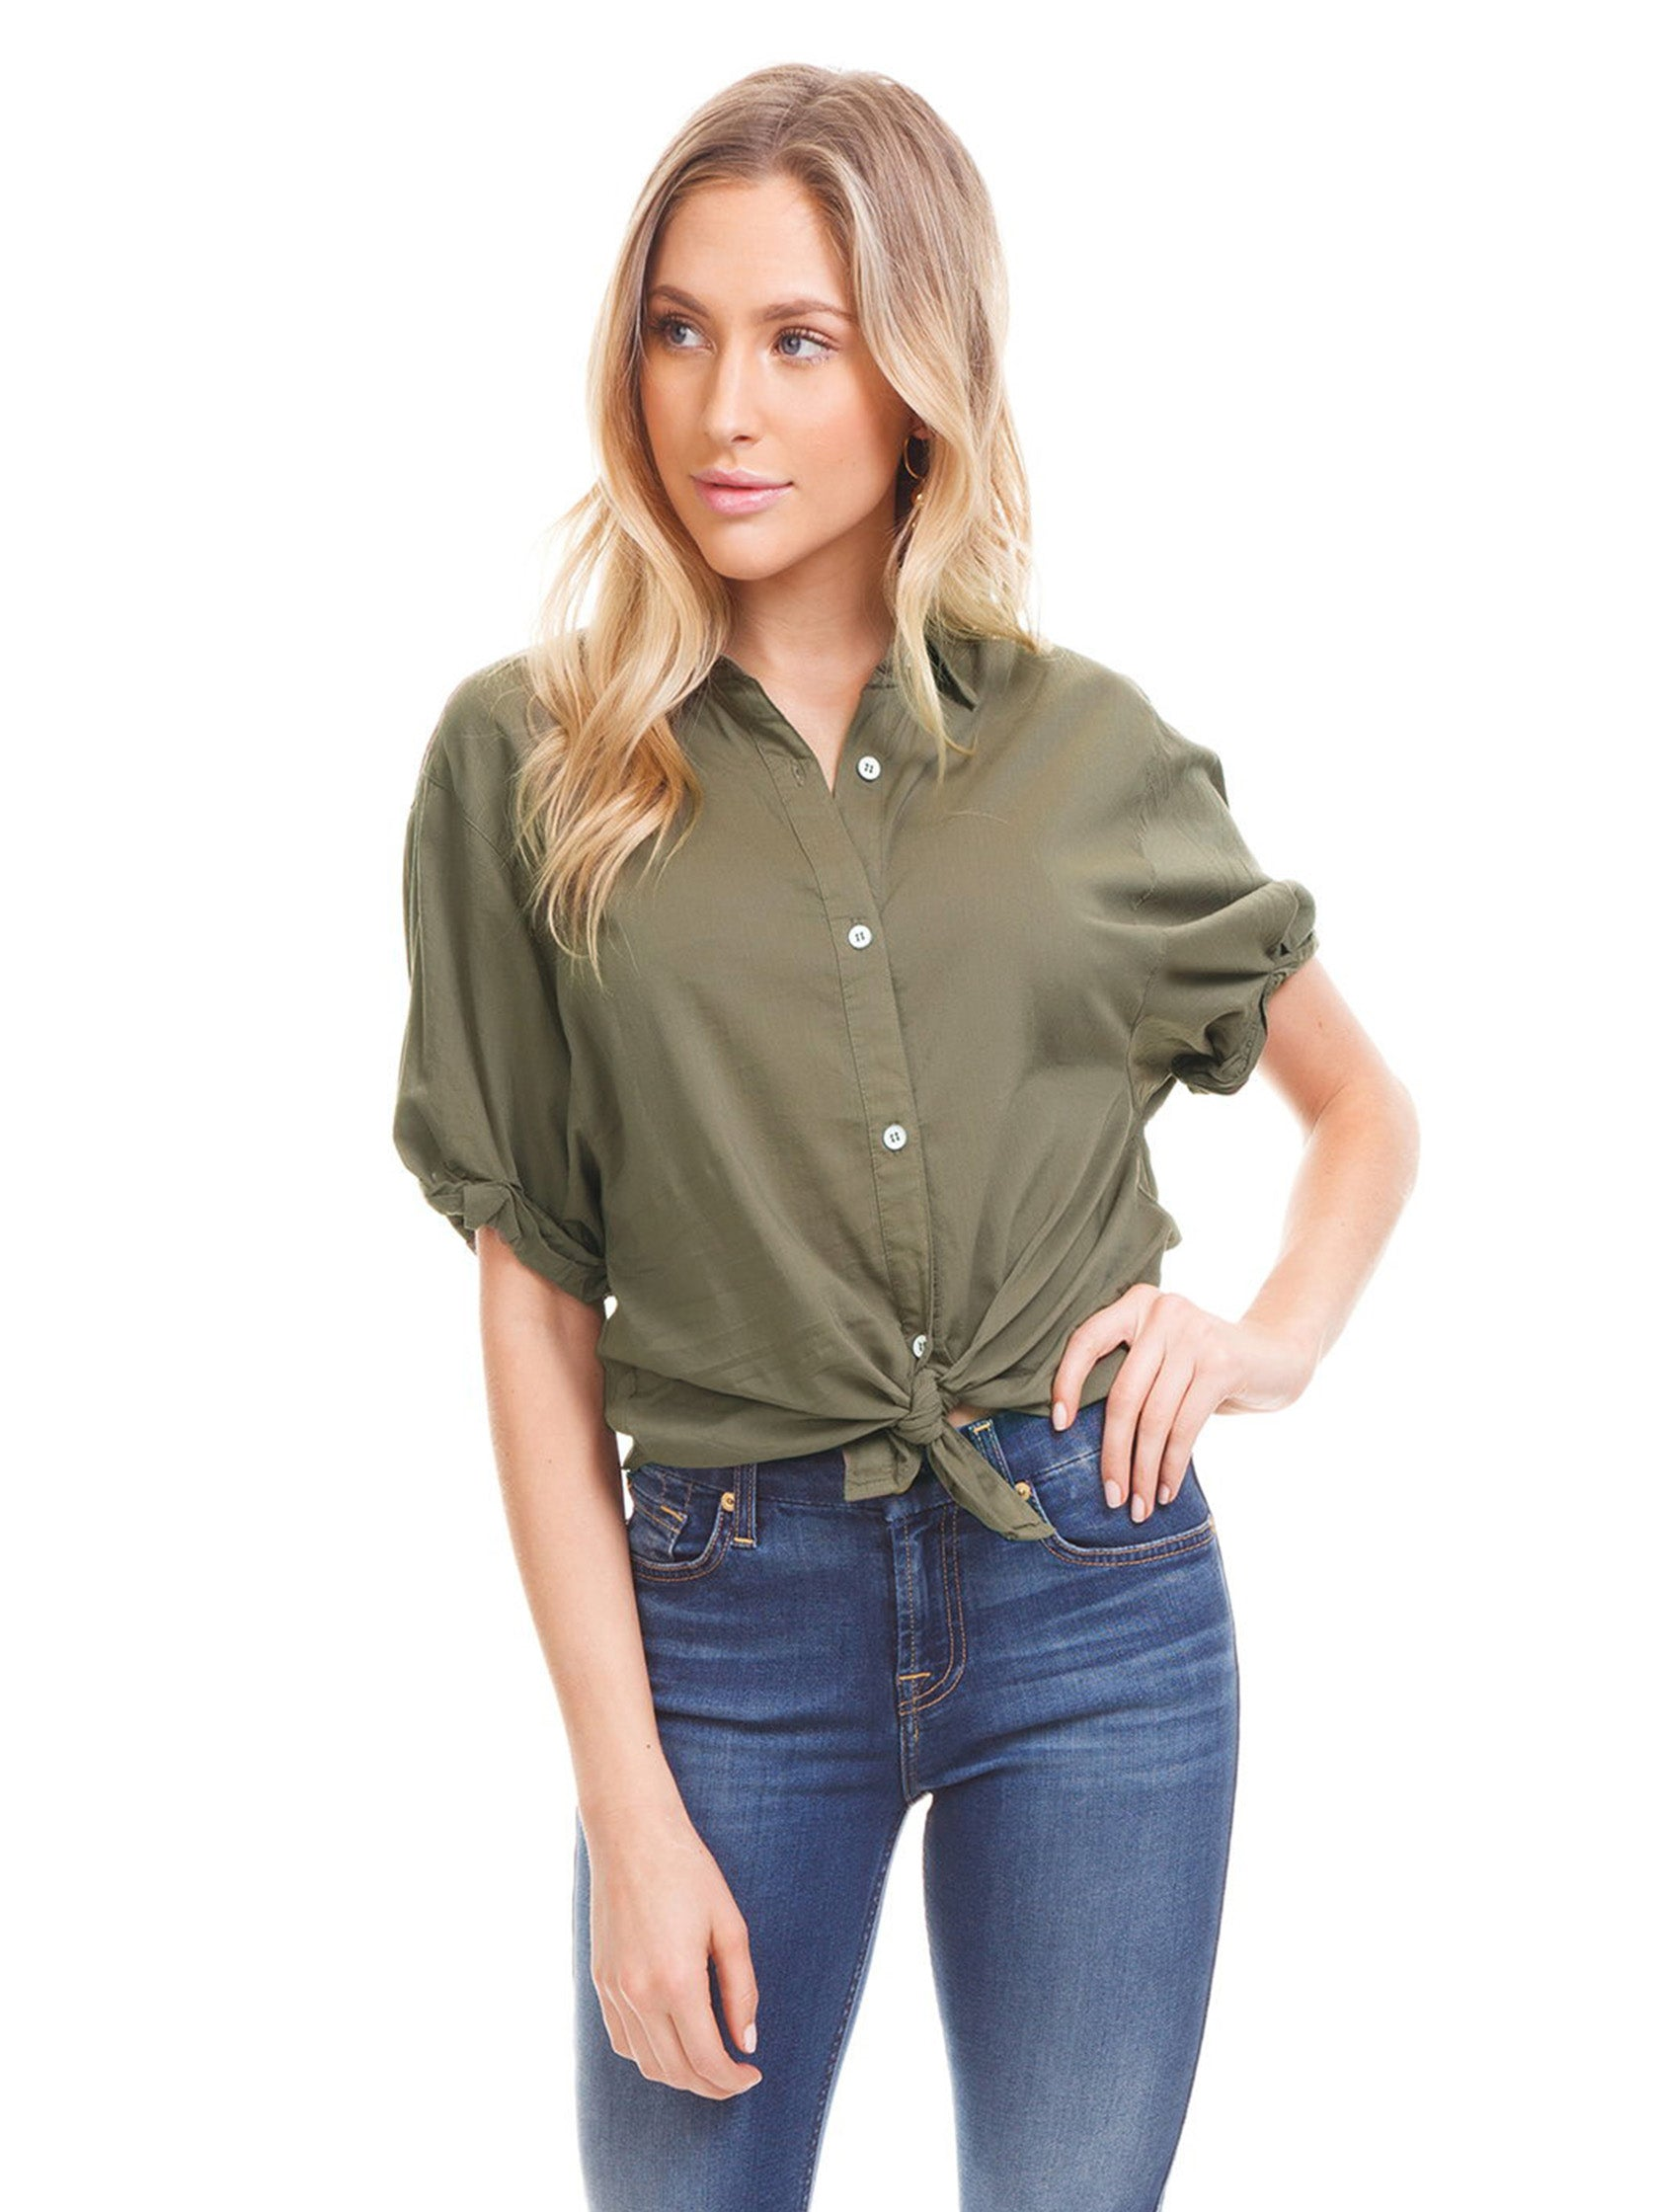 Woman wearing a top rental from Splendid called Boyfriend Shirt